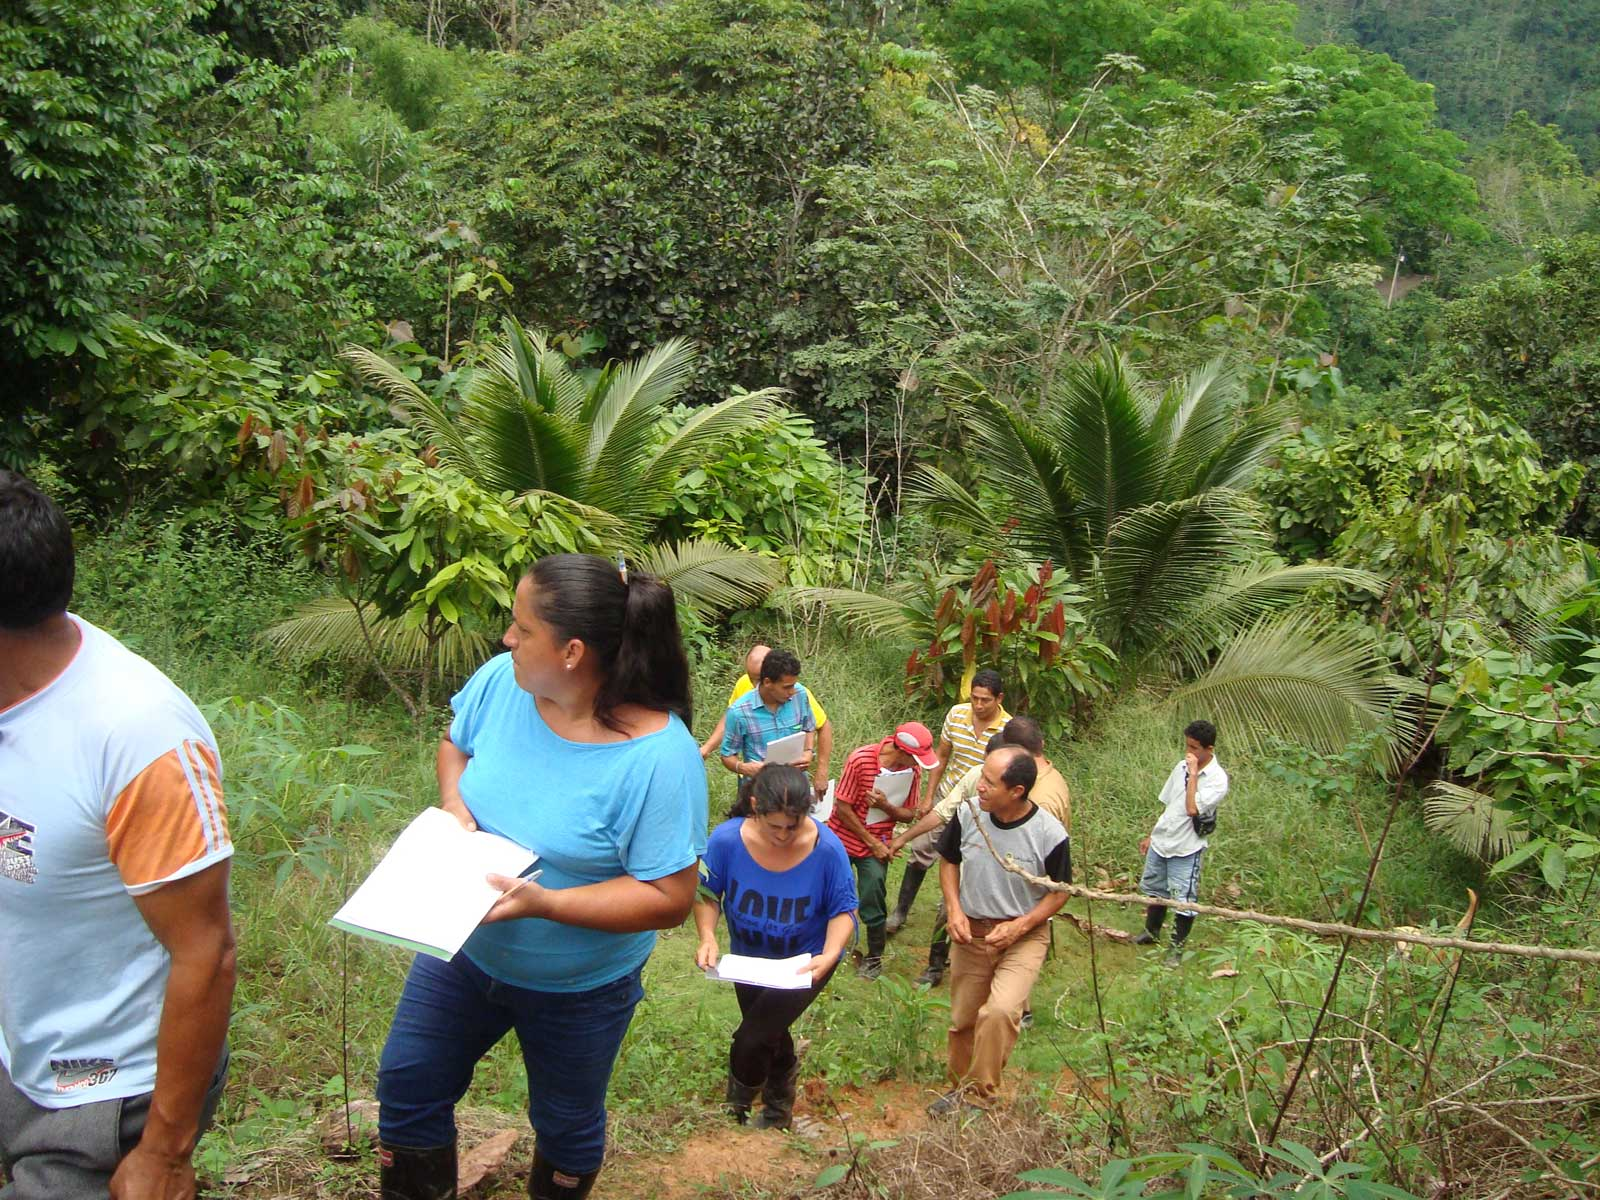 Adult visitors hike through the forest